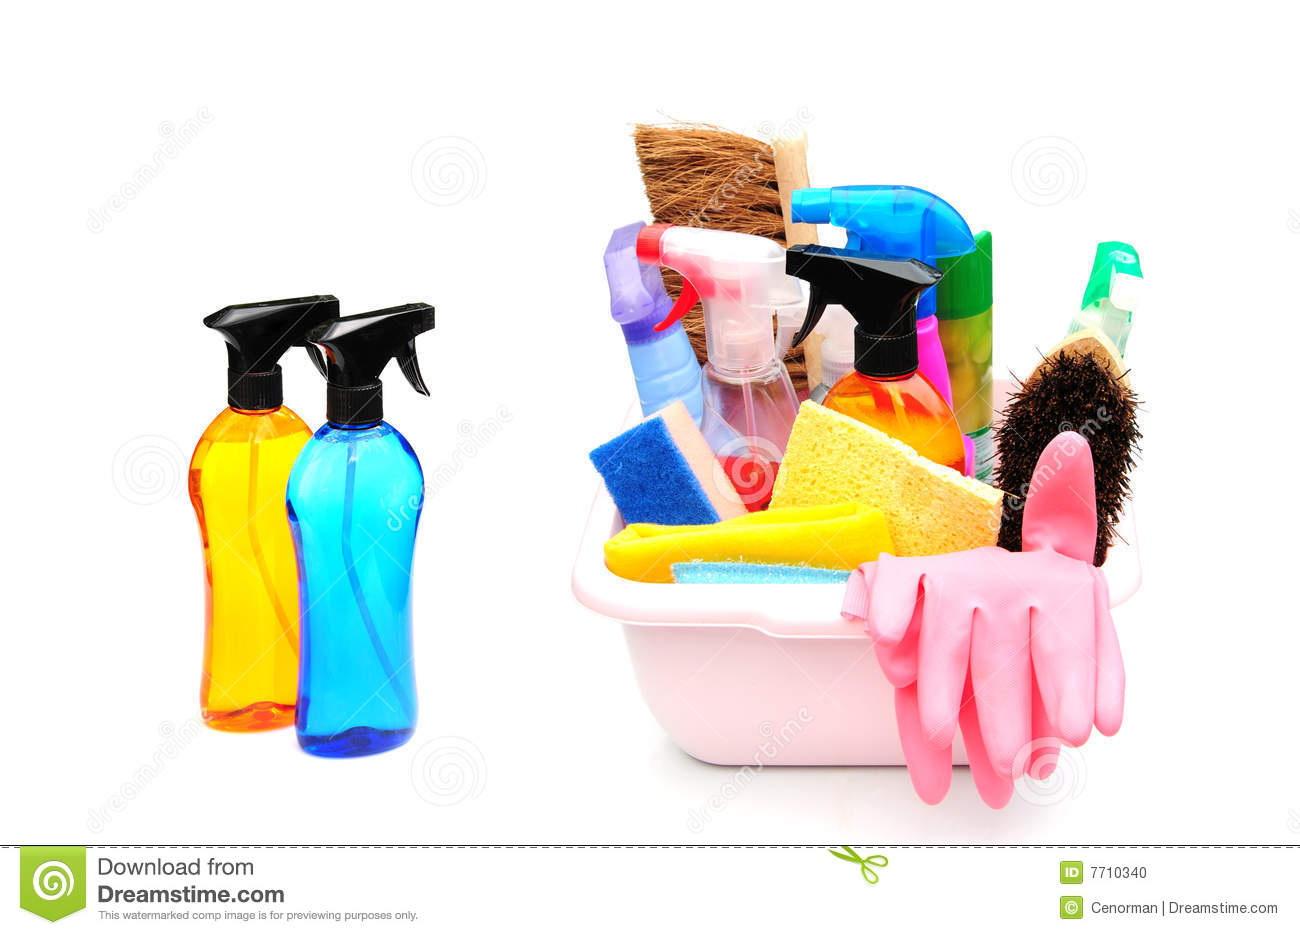 Cleaningprodukter